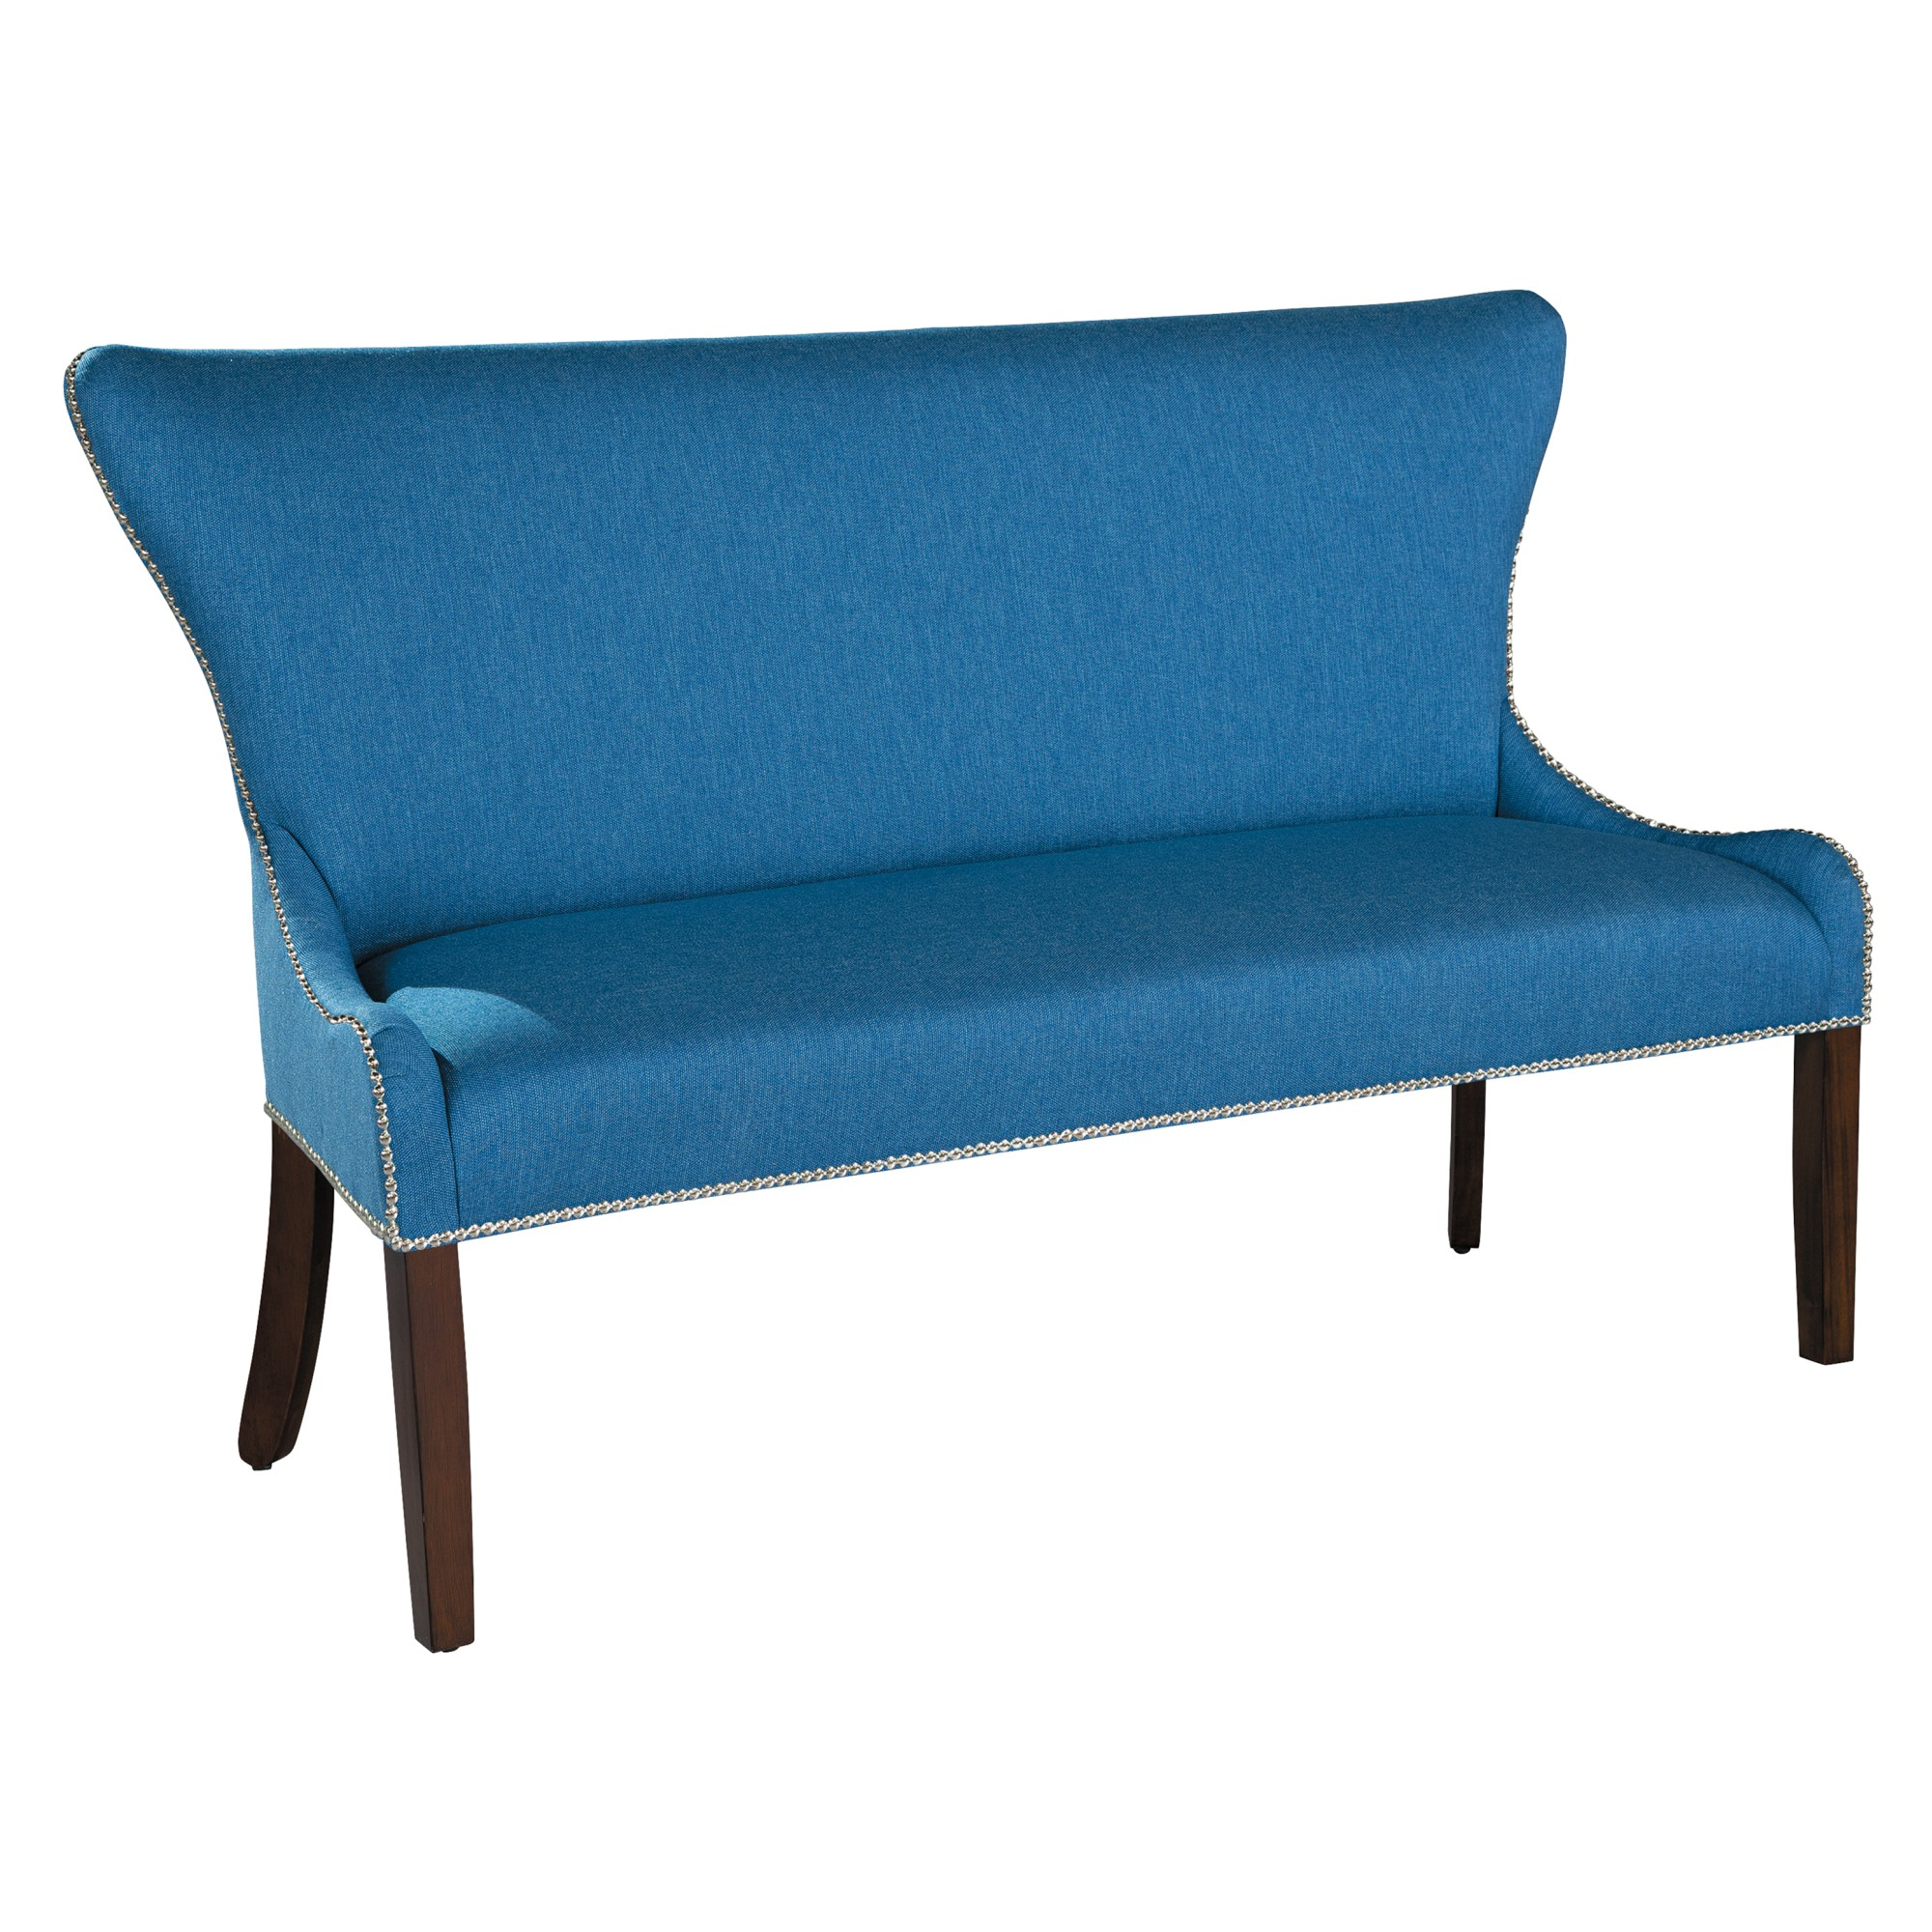 Image for 726965 Christine Settee with Nailheads from Hekman Official Website